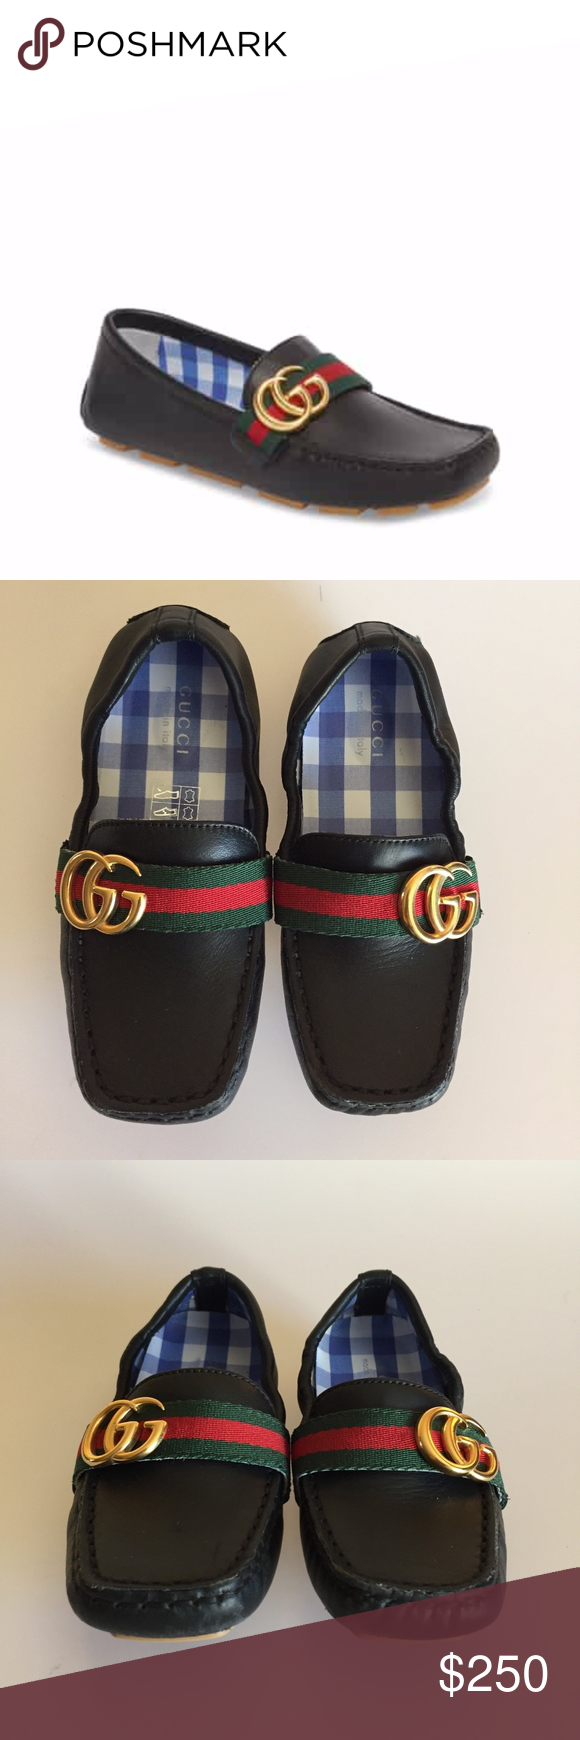 c8d0746363 GUCCI Noel Driving Loafer Black Leather (Toddler)   In excellent  conditions